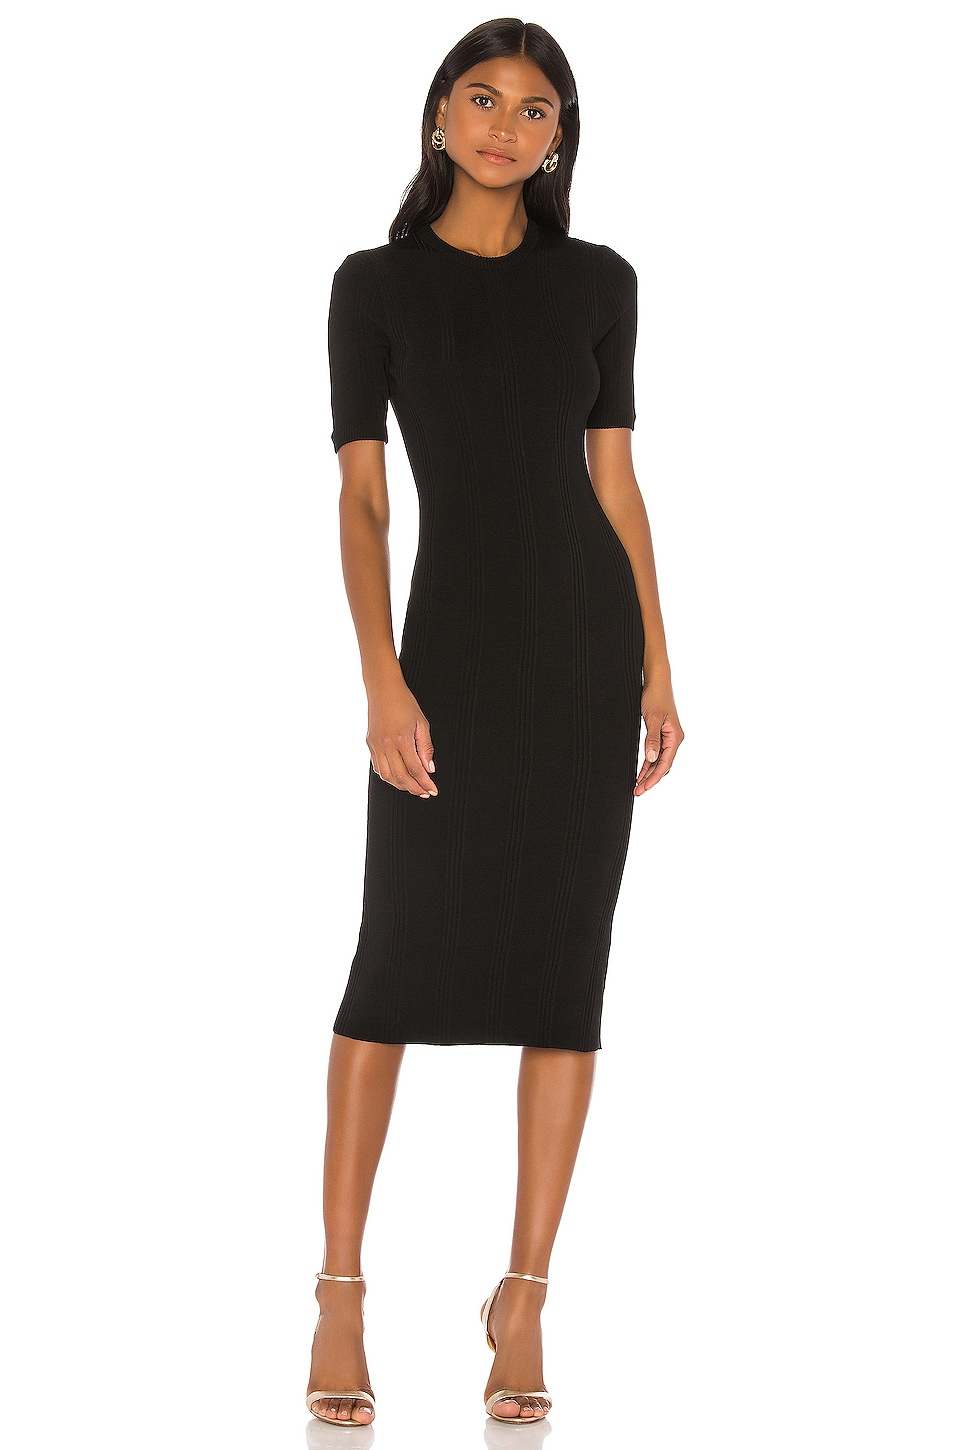 L'AGENCE Koller Sweater Dress in Black